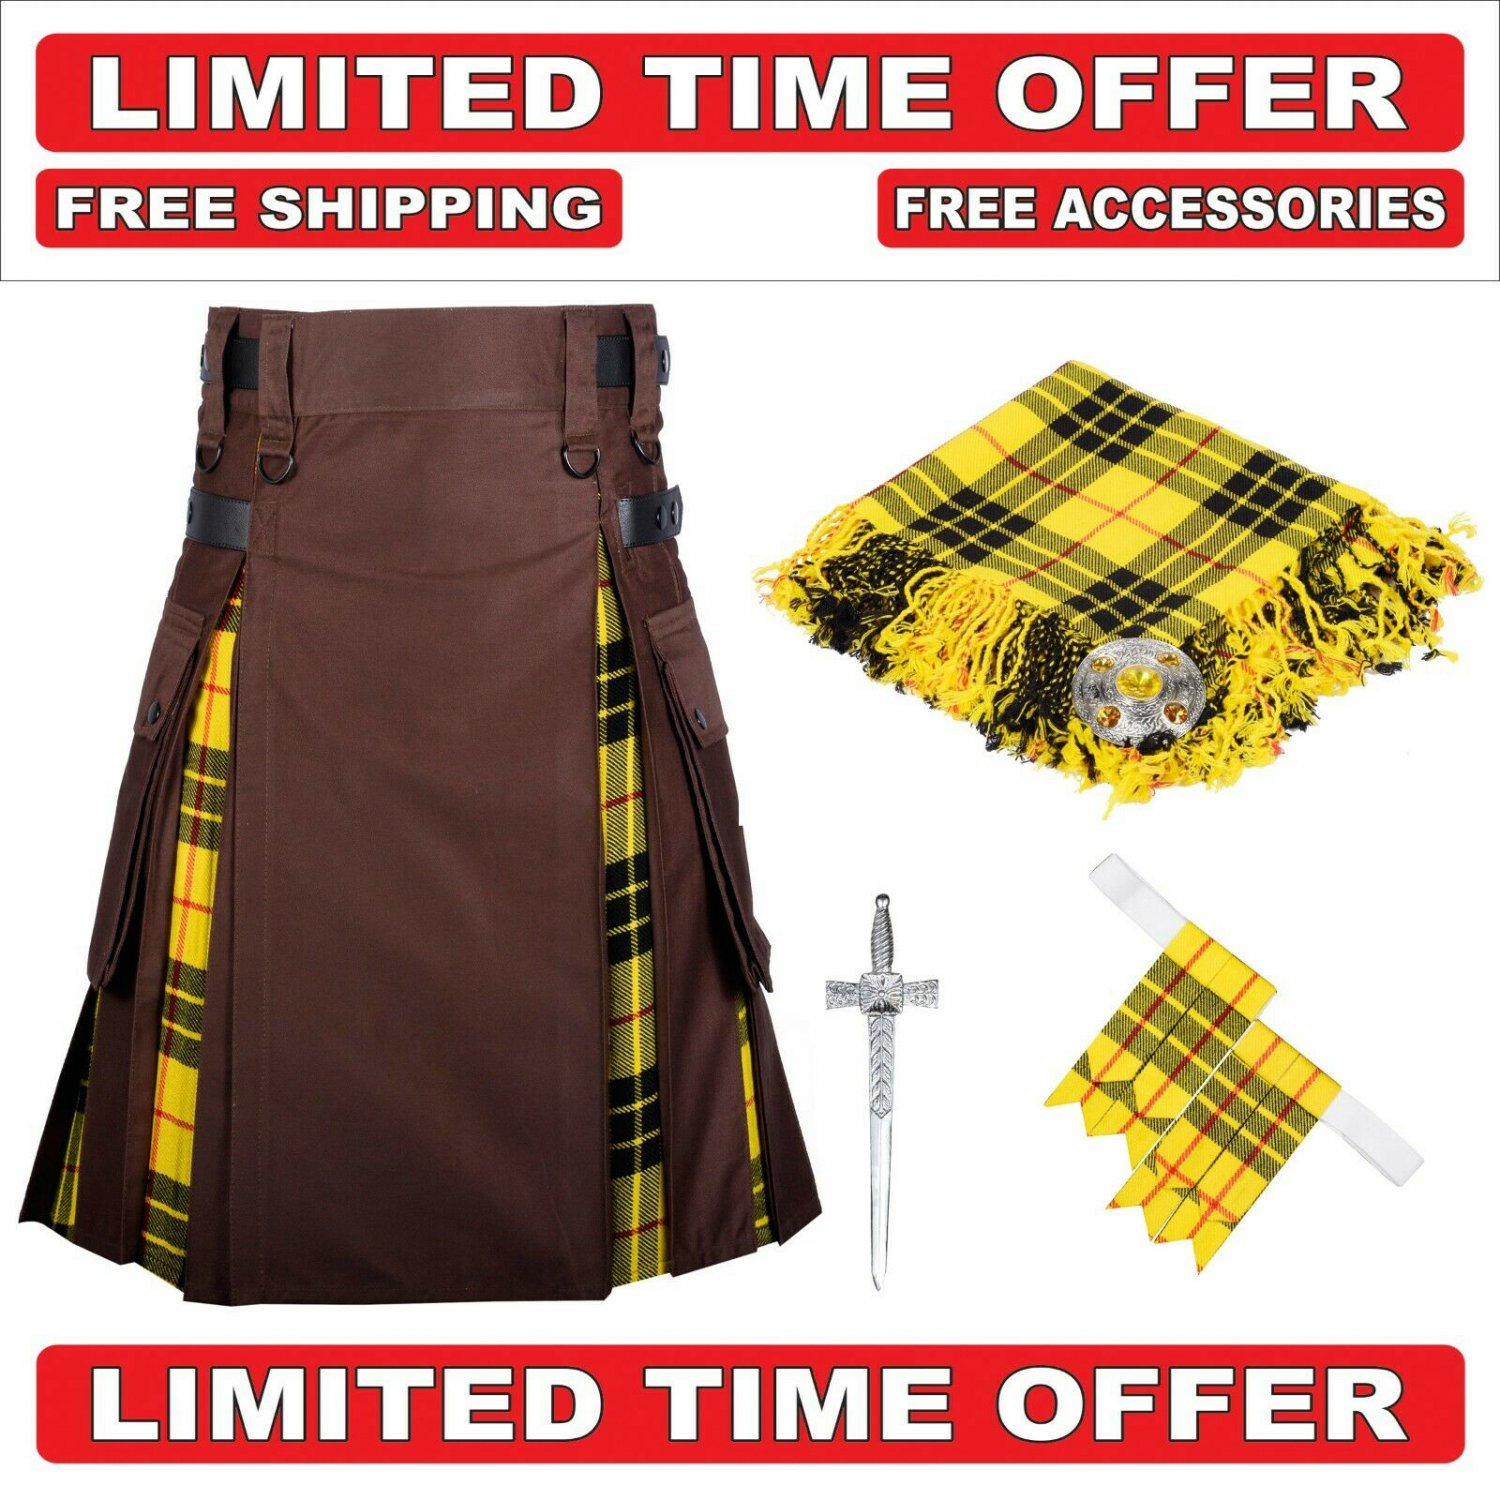 30 size Brown cotton Macleod Tartan Hybrid Utility Kilts For Men.Free Accessories & Shipping